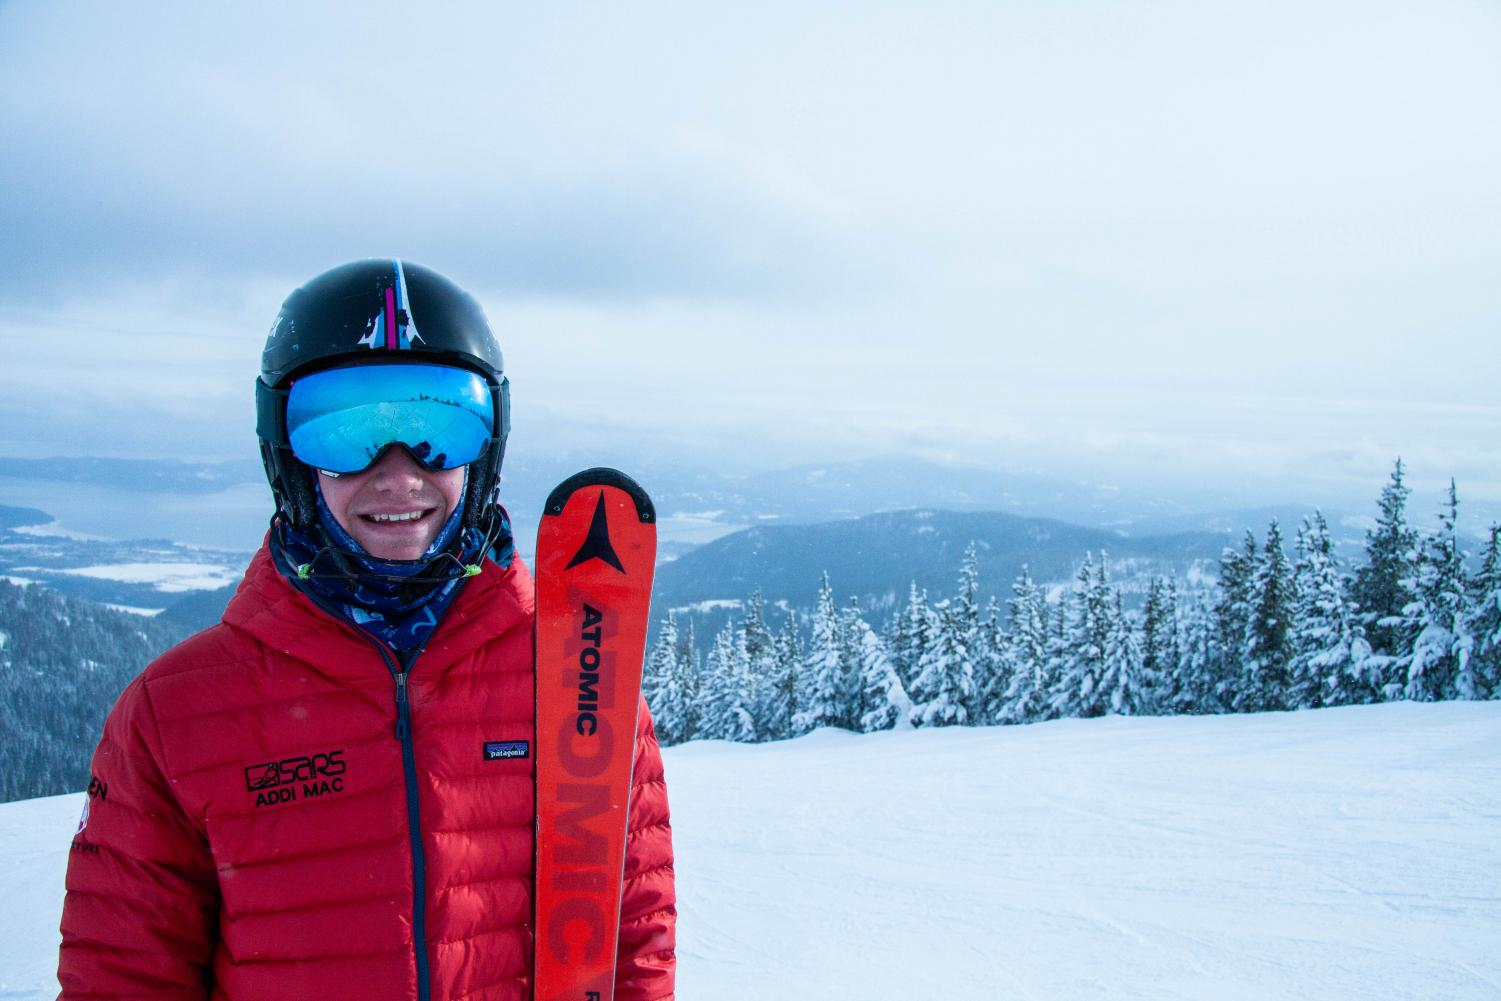 Addison McNamara has dedicated his time training at Schweitzer Mountain Resort before upcoming ski races.